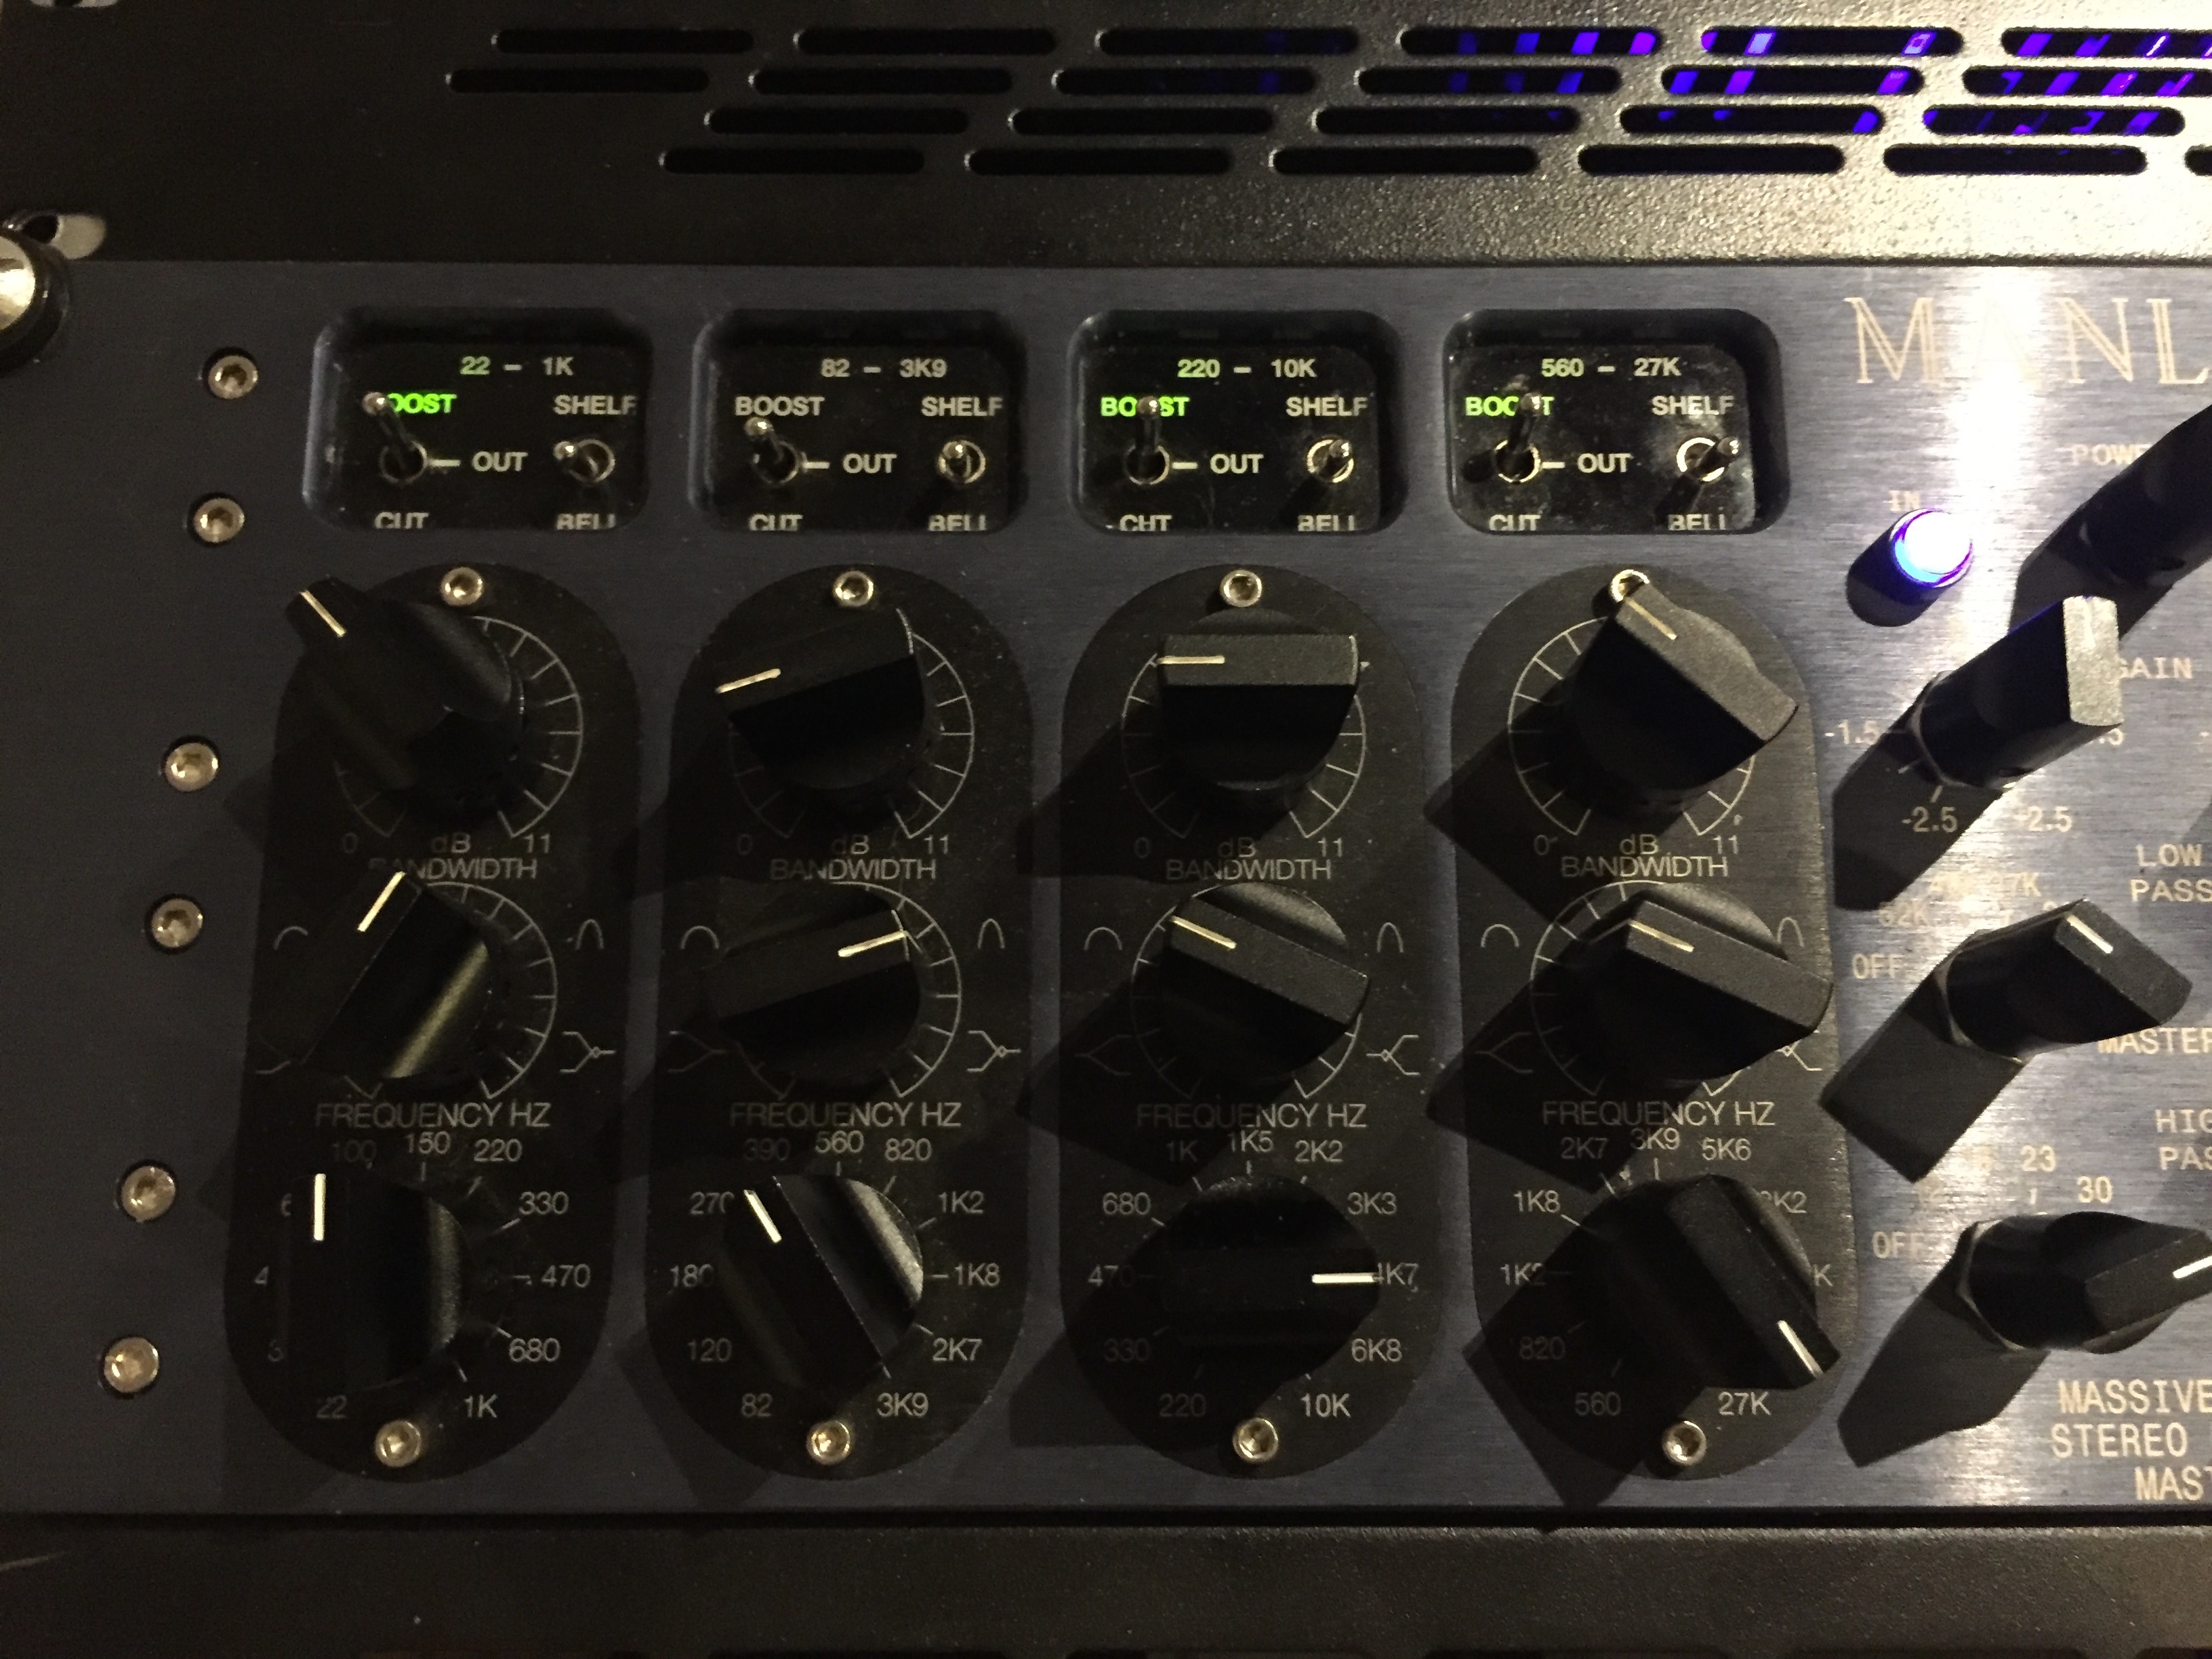 MANLEY MP Mastering Edition